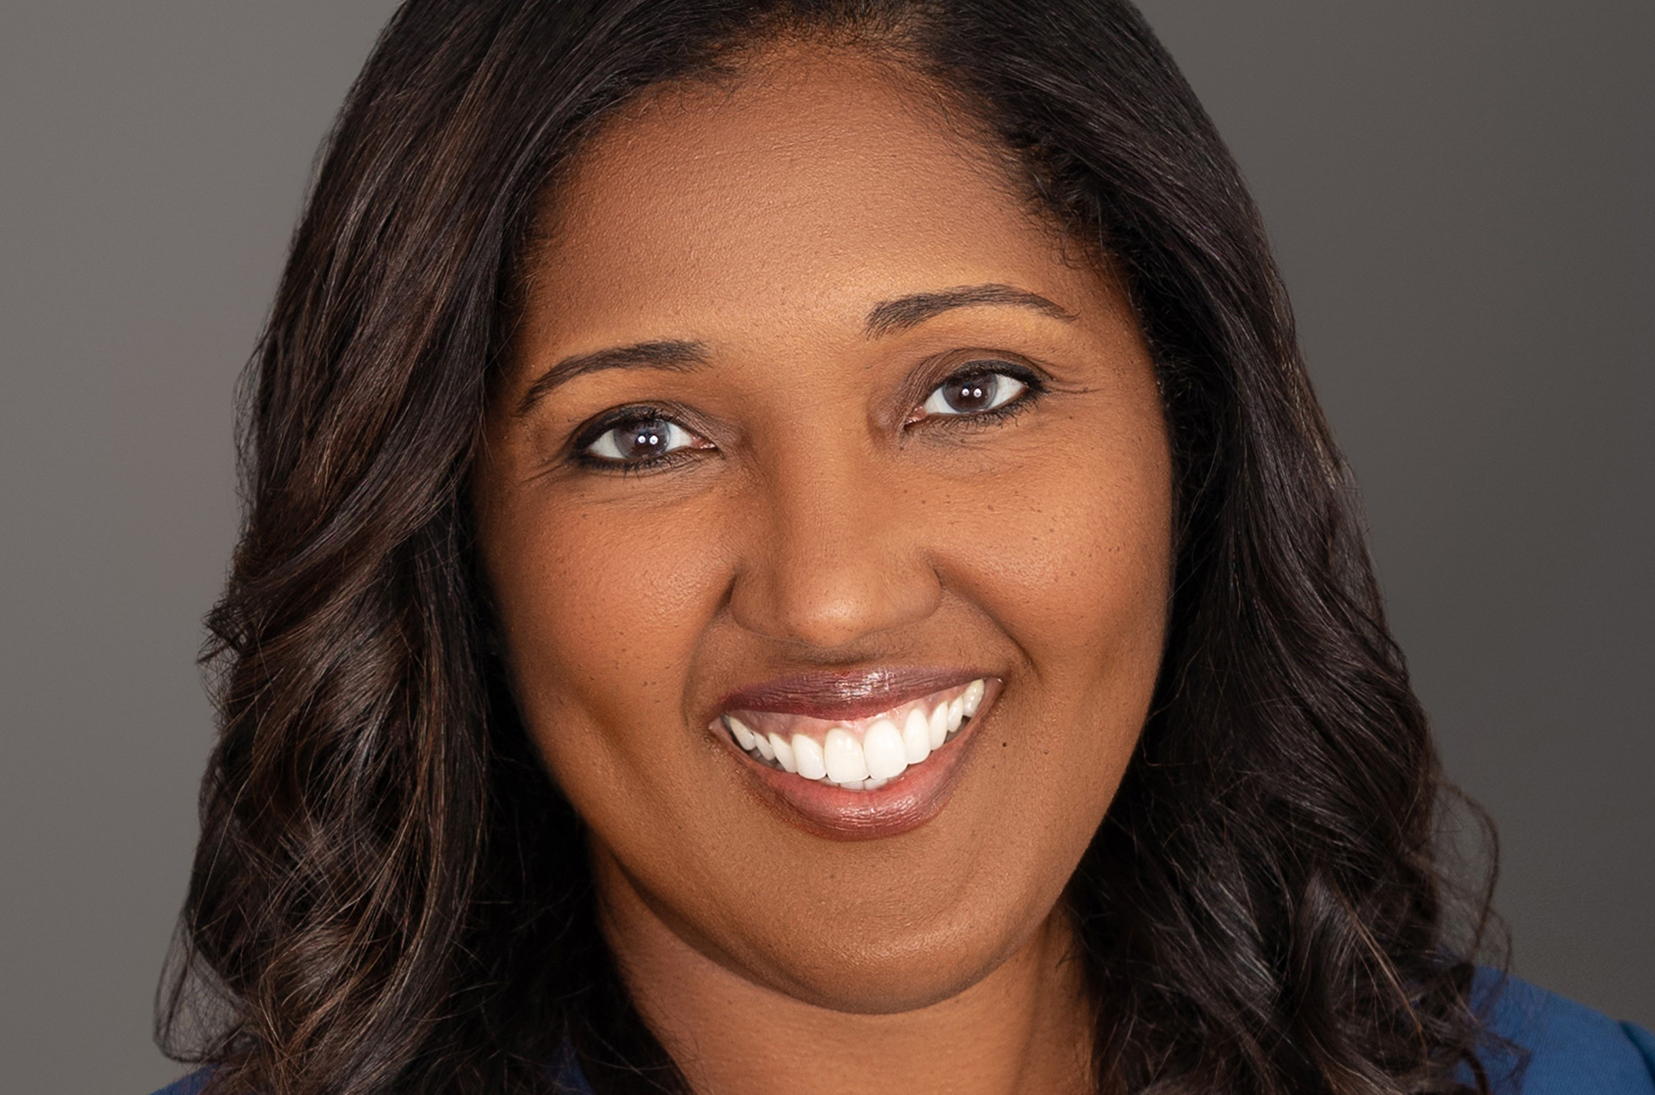 """GWS Tackles Lack of Diversity in Wellness Industry with """"The Doctor is INclusive"""" Series, Hosted by Nicola Finley, MD"""